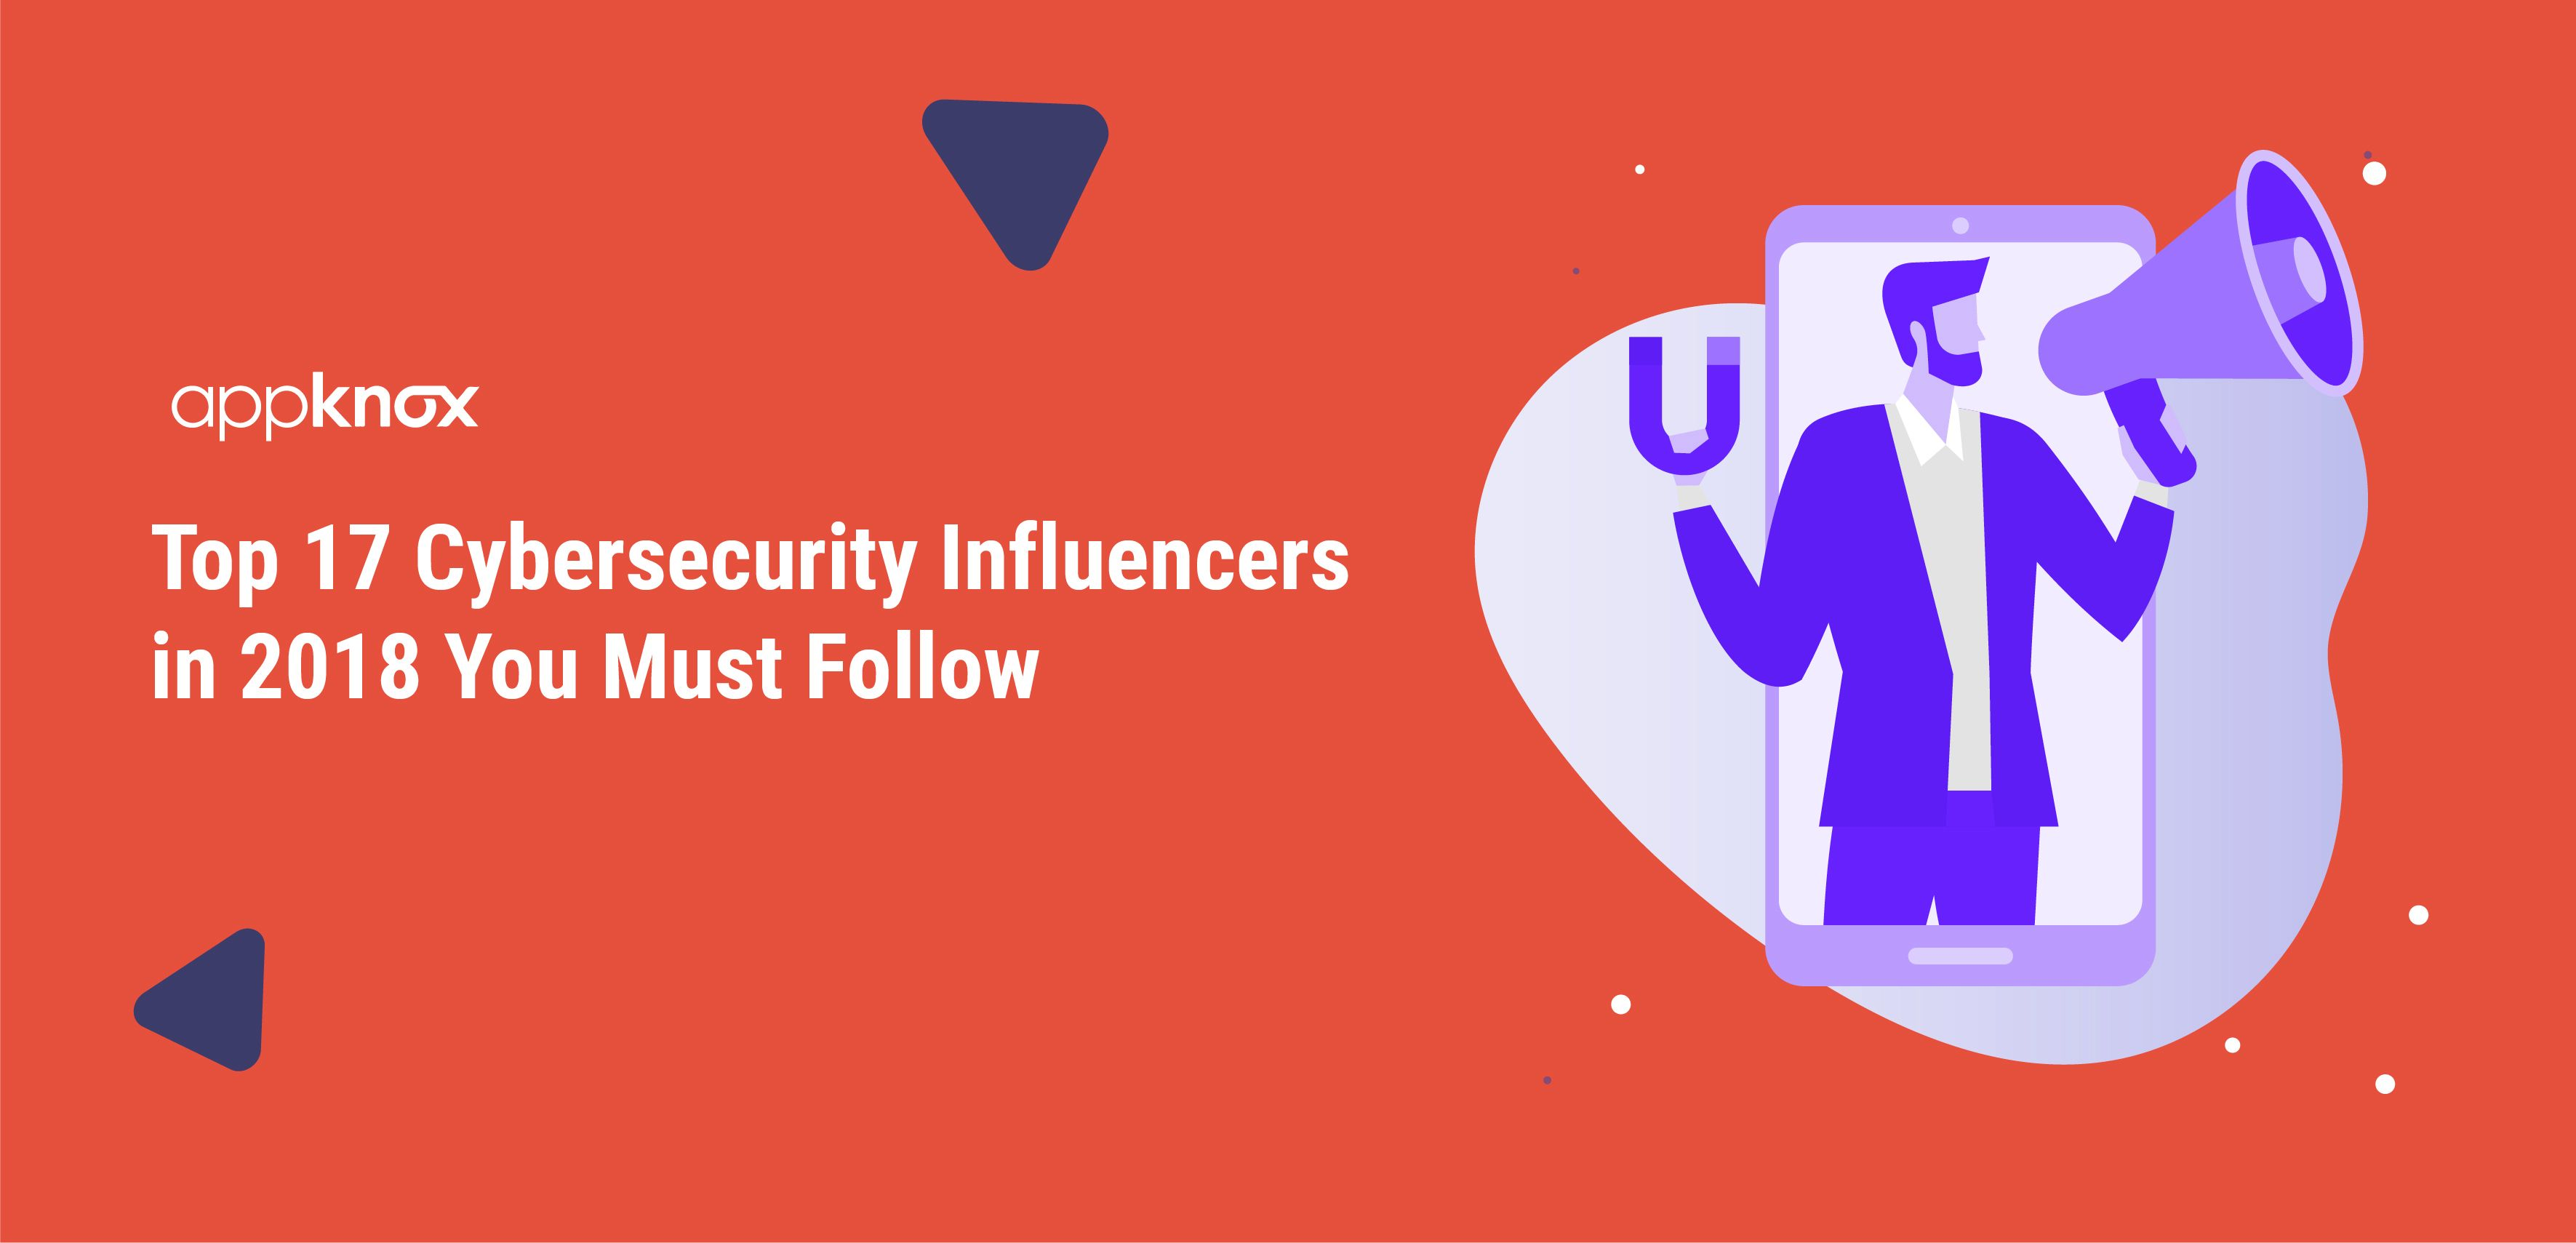 Top 17 Cybersecurity Influencers in 2018 You Must Follow